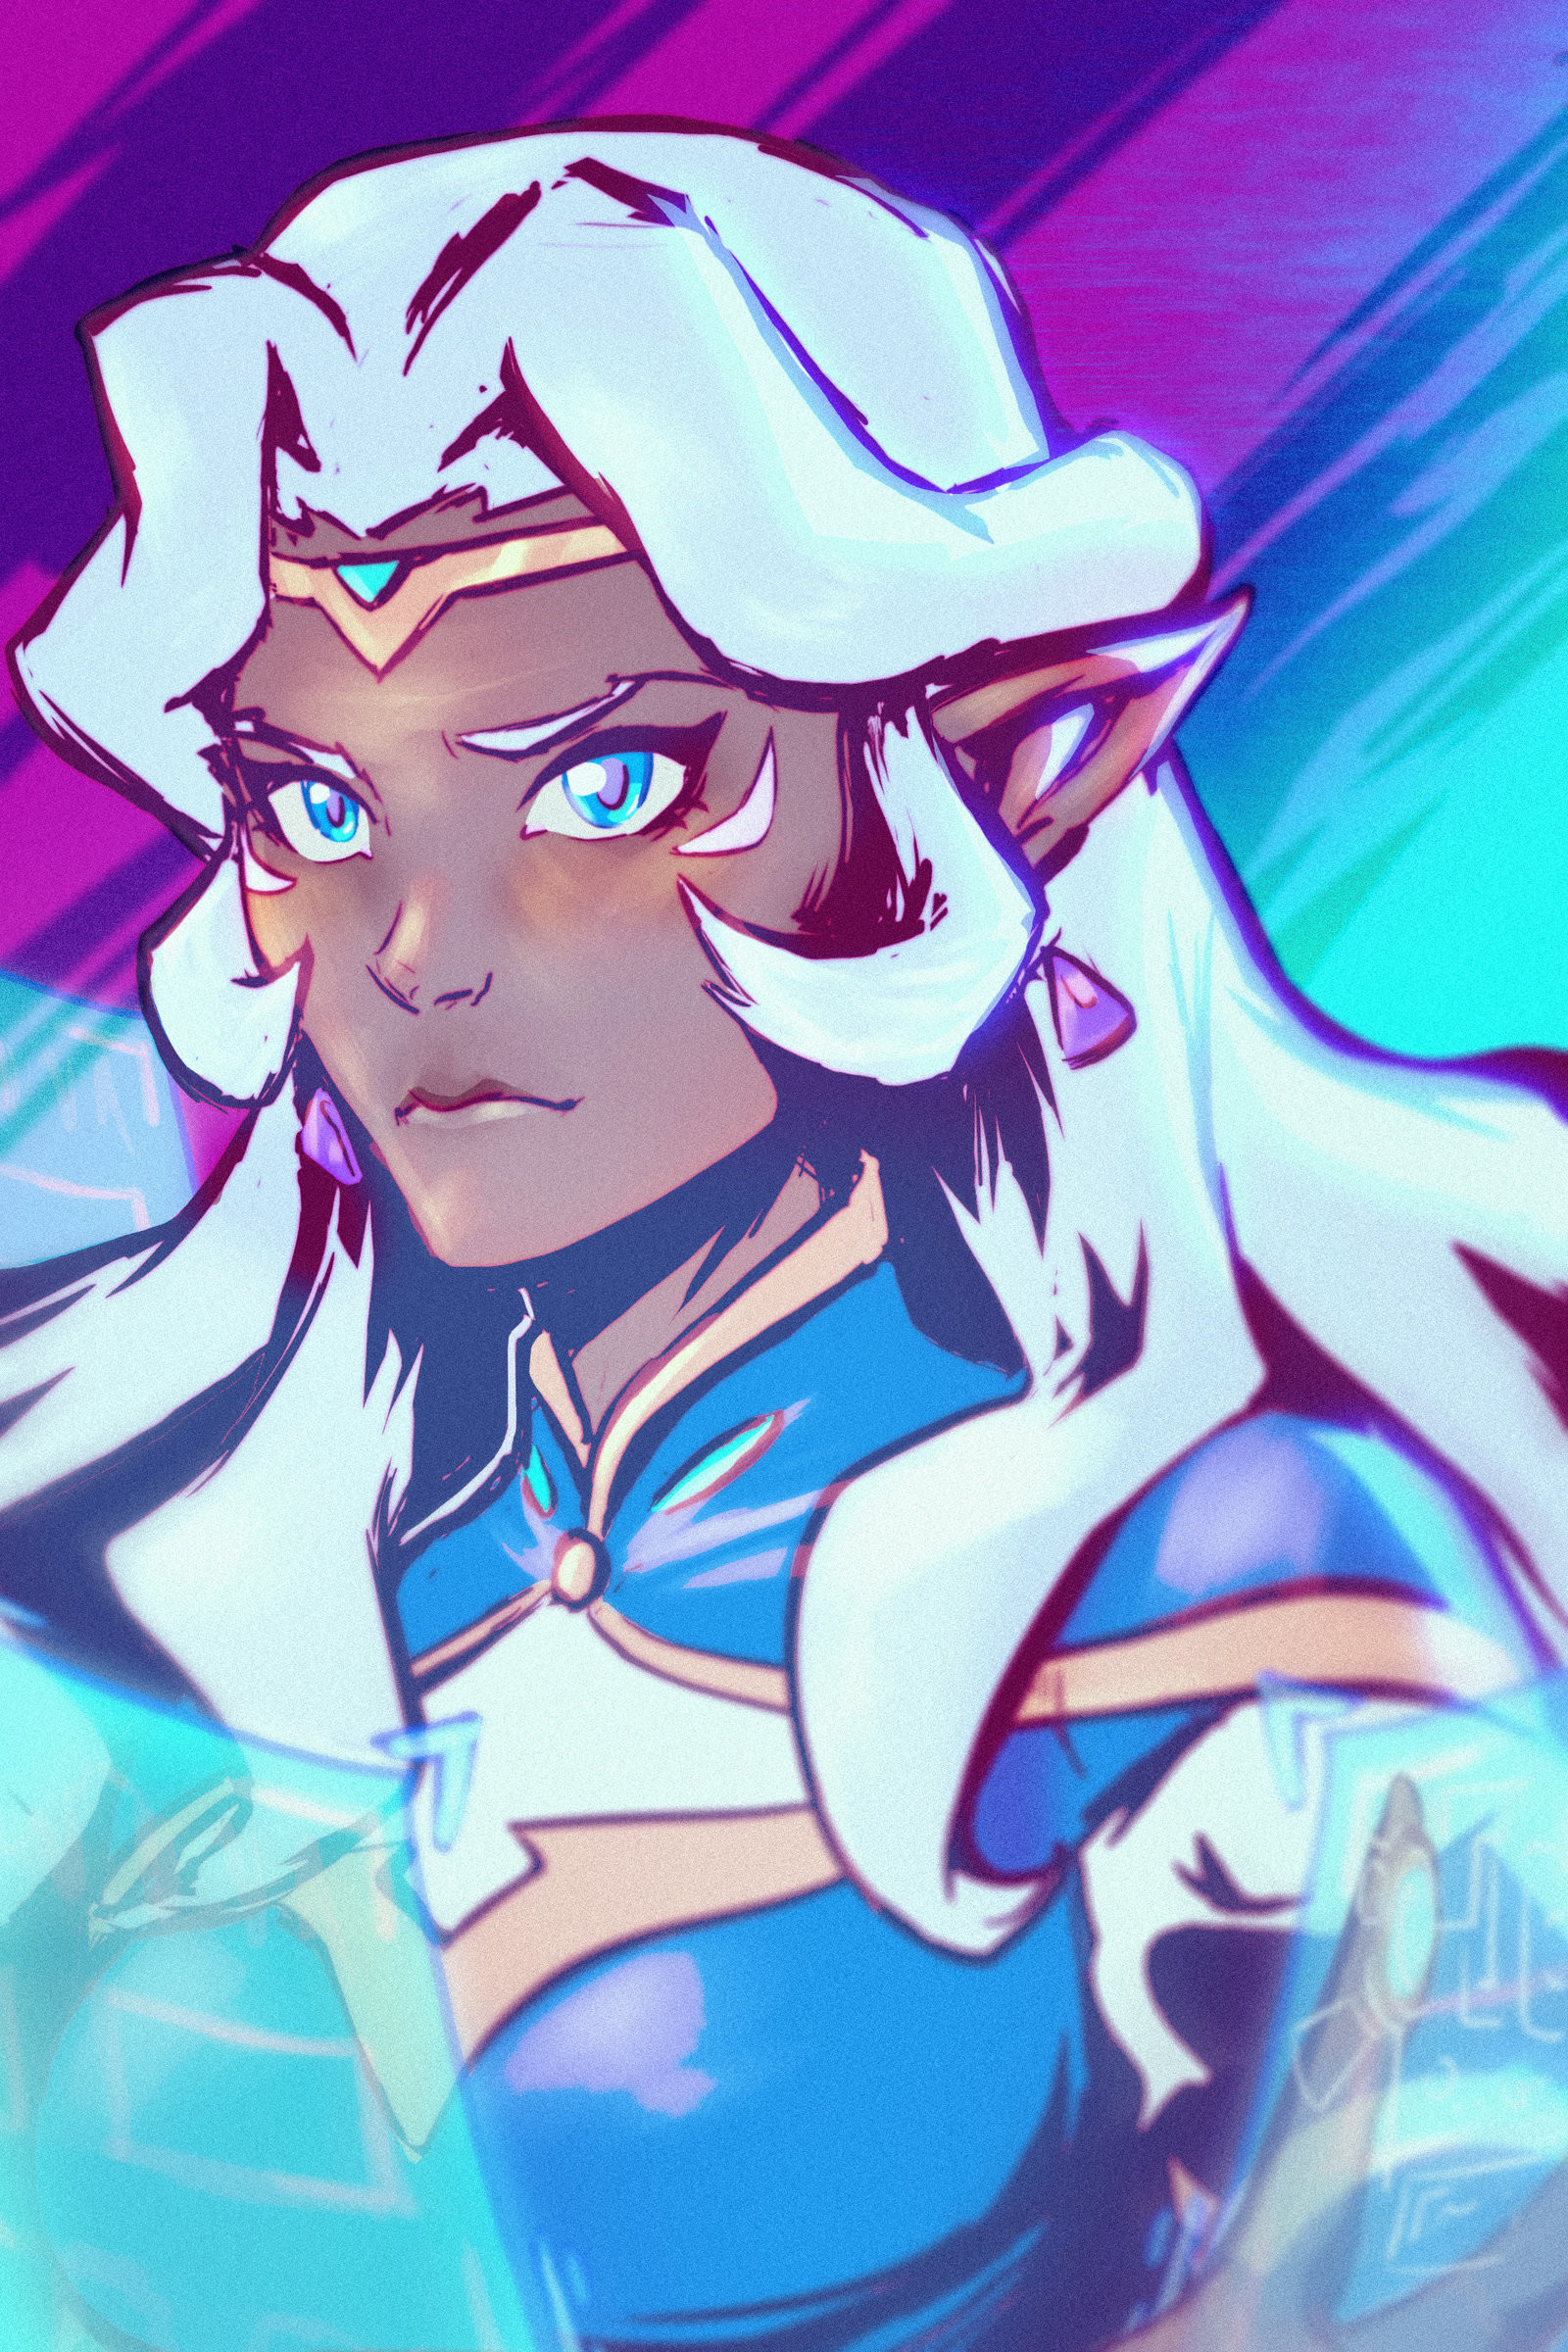 Nicofari farinasso princess allura by nicofari daga0yj